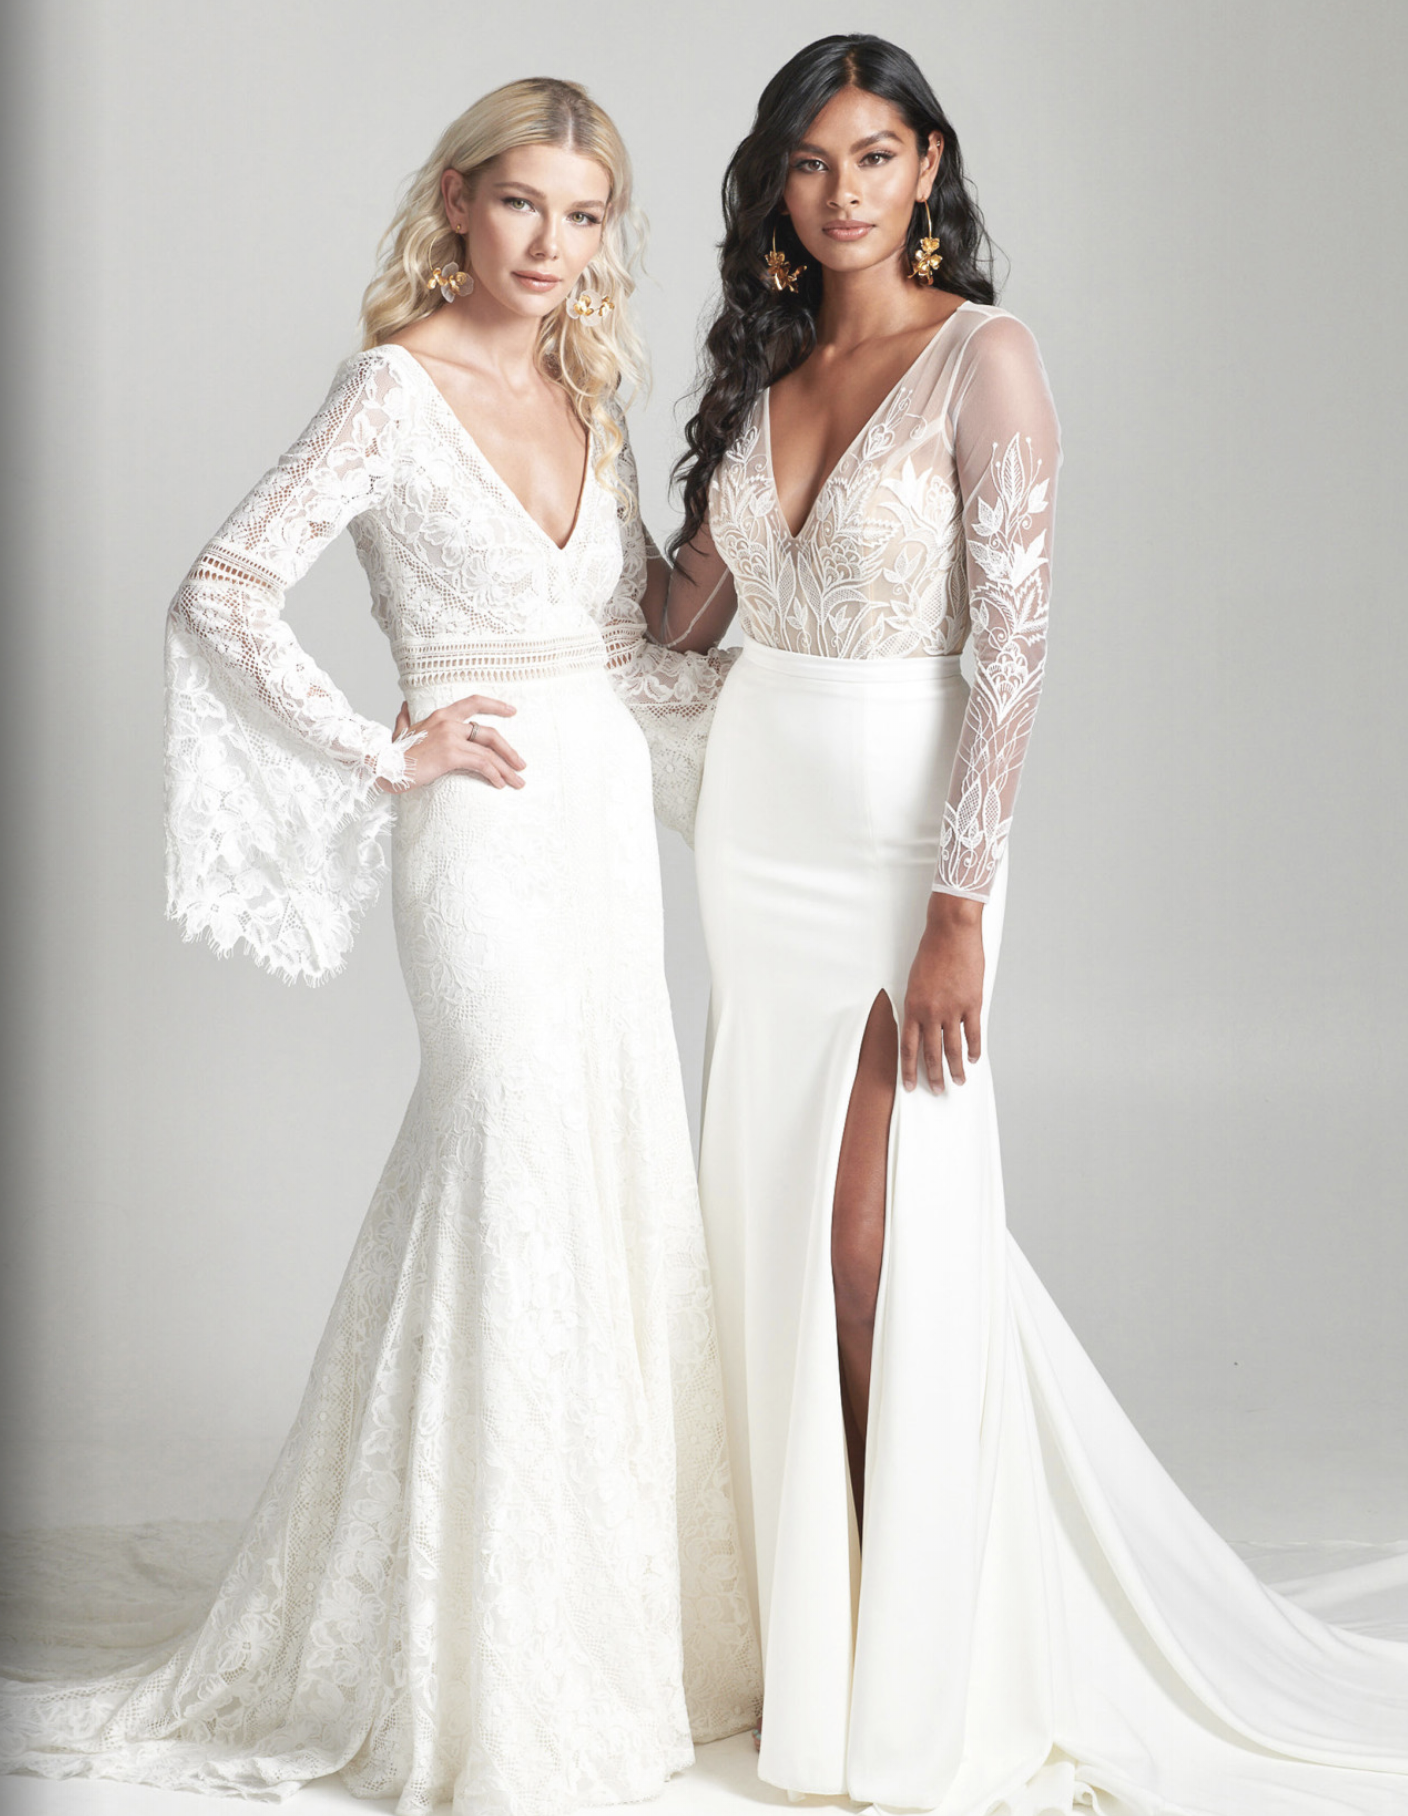 The Rebecca Schoneveld 2020 bridal collection is available at Arizona bridal shop, Neue Bride in Mesa, Arizona! Come shop for the boho lace bell sleeve Jasper gown and the boho open back Vieques bodysuit skirt combination.